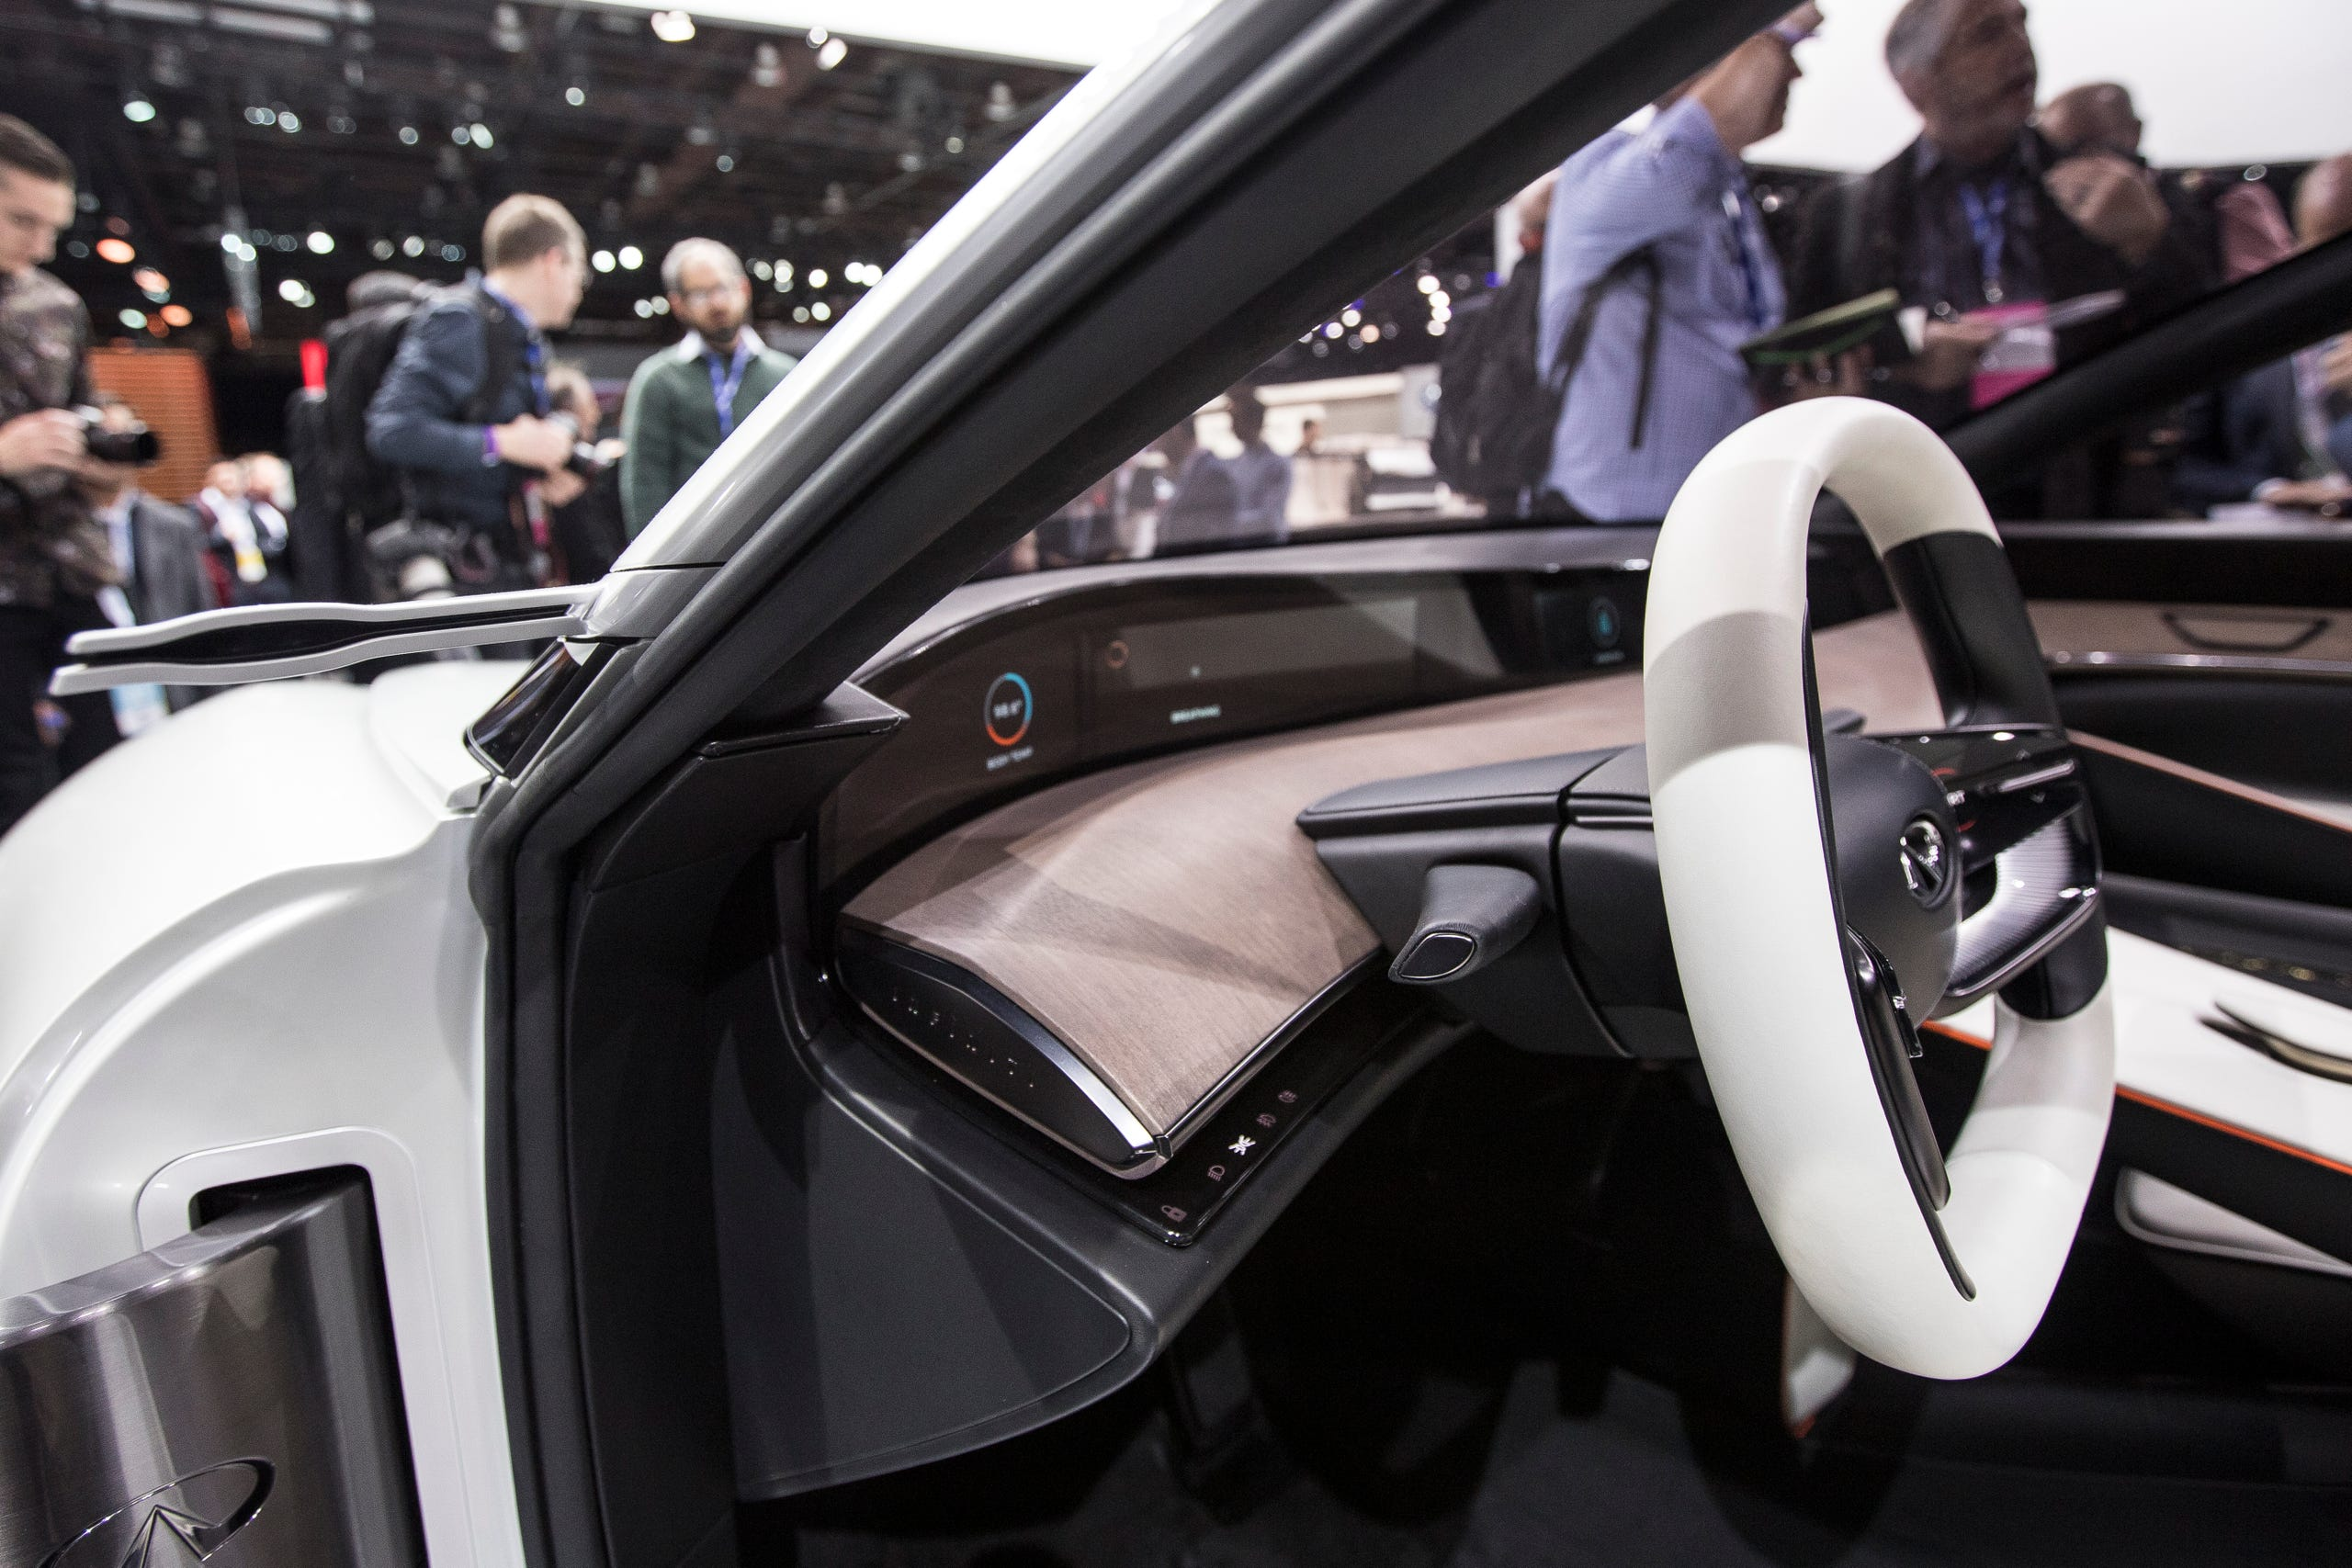 Steering wheel and side mirror of the Infiniti Q Inspiration concept during the 2018 North American International Auto Show held at Cobo Center in downtown Detroit on Monday, Jan. 15, 2018.